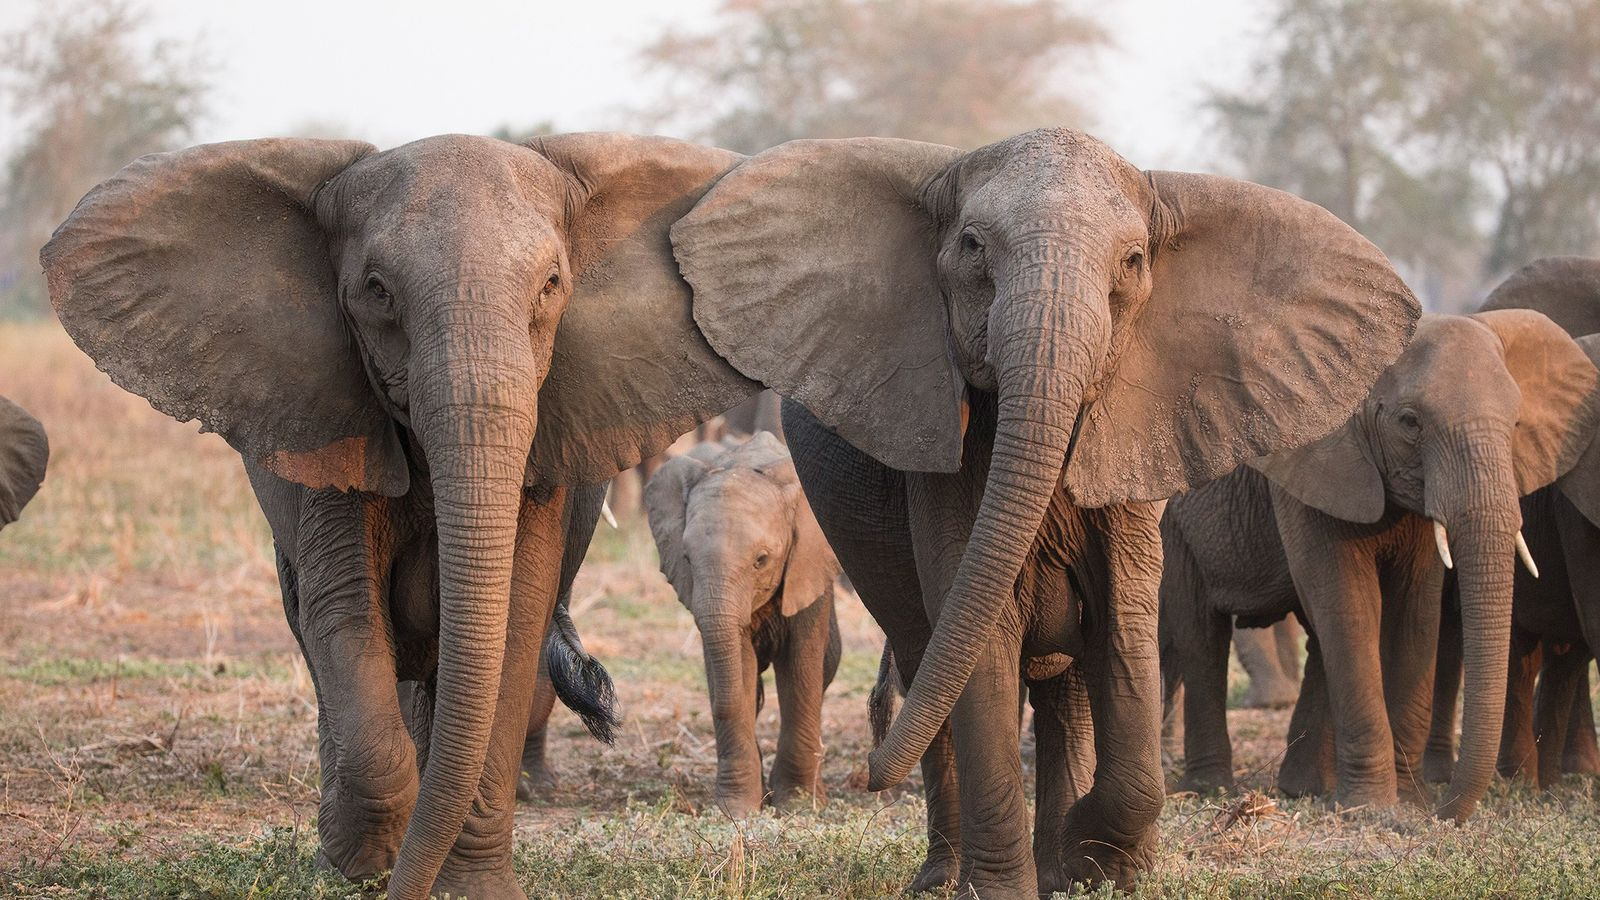 Elephants Are Evolving To Lose Their Tusks Under Poaching